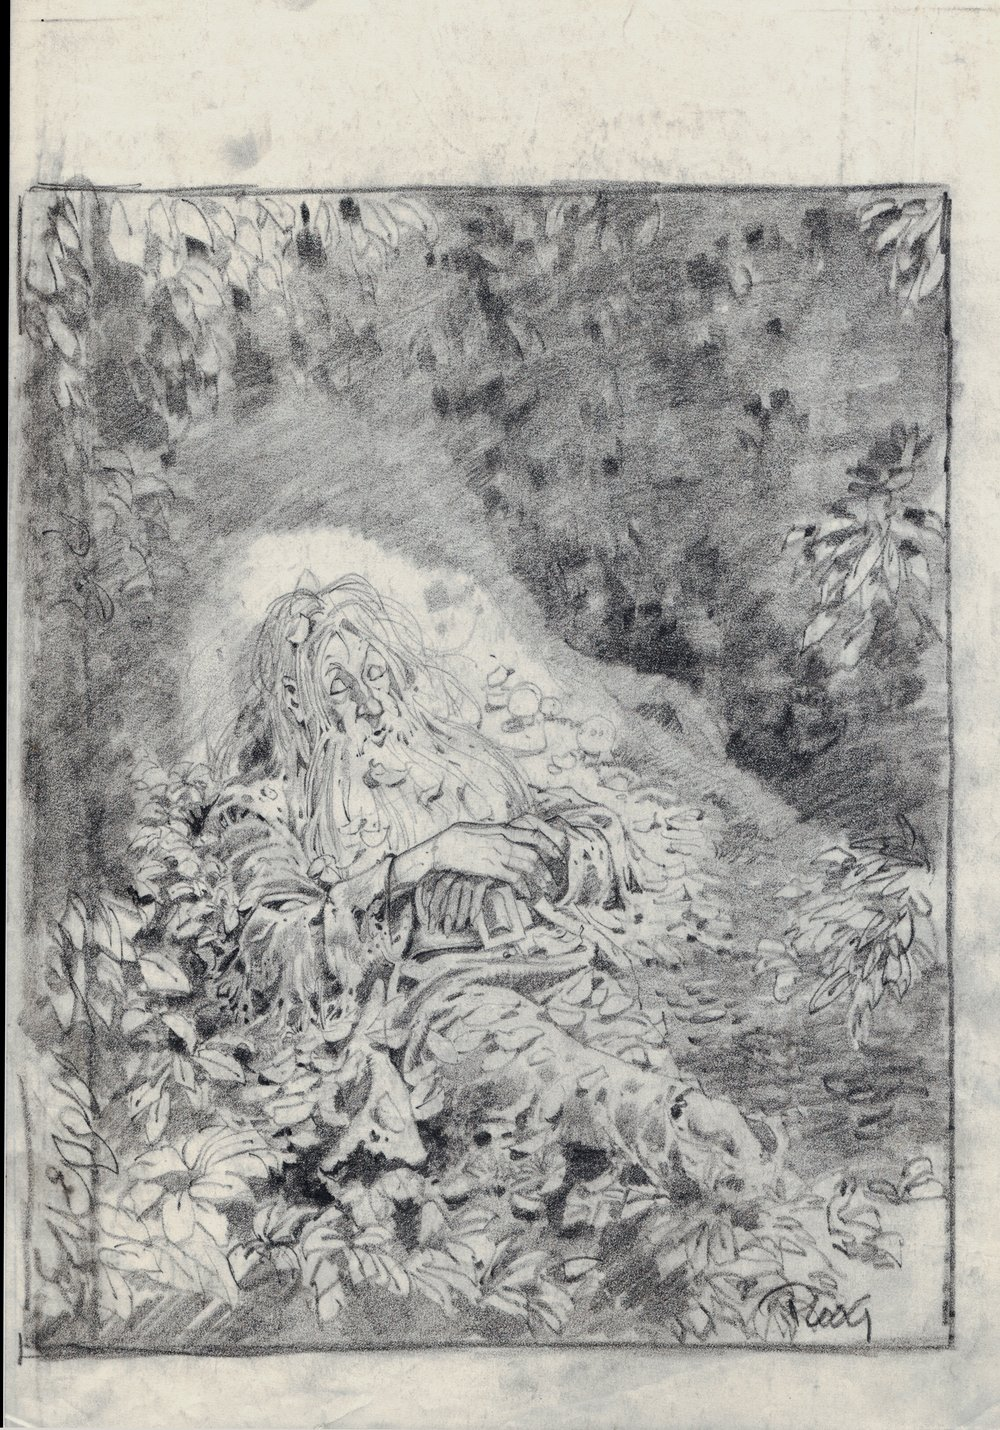 Rip Van Winkle Detailed Drawing (SOLD LIVE ON THE ROMITAMAN ART DROP PODCAST ON 10-9-2021